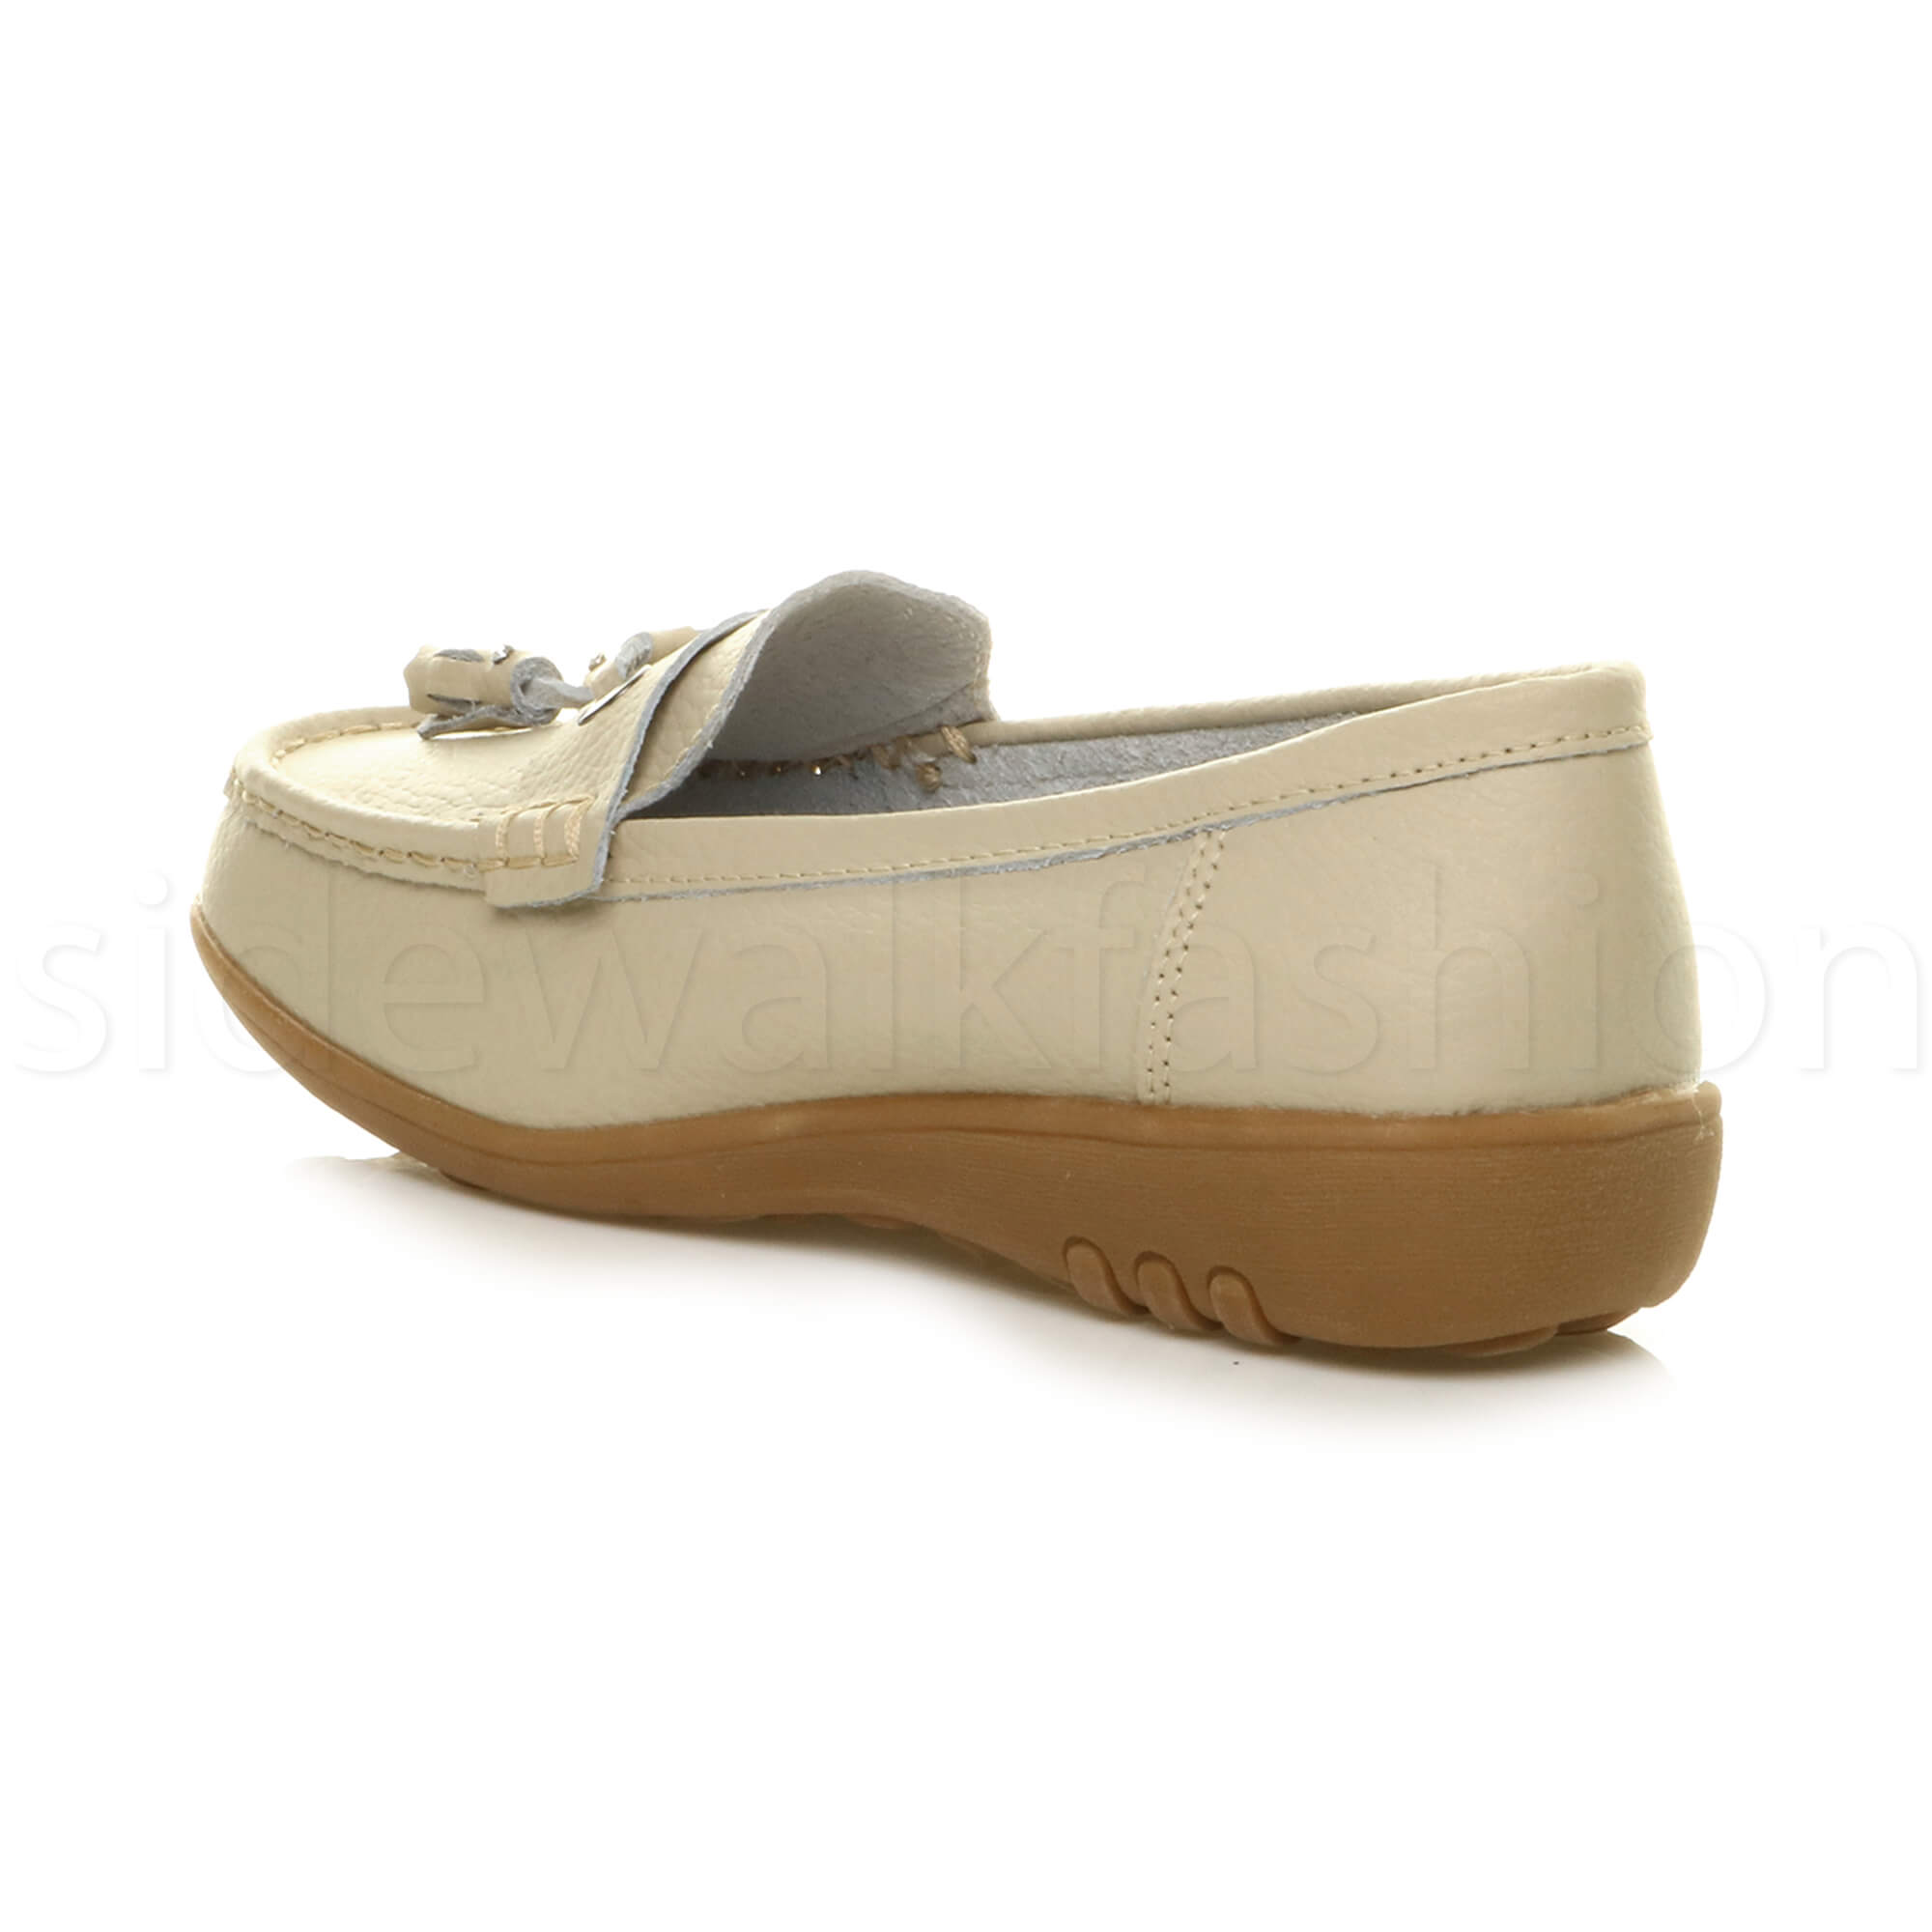 Womens Boat Shoes And Loafers